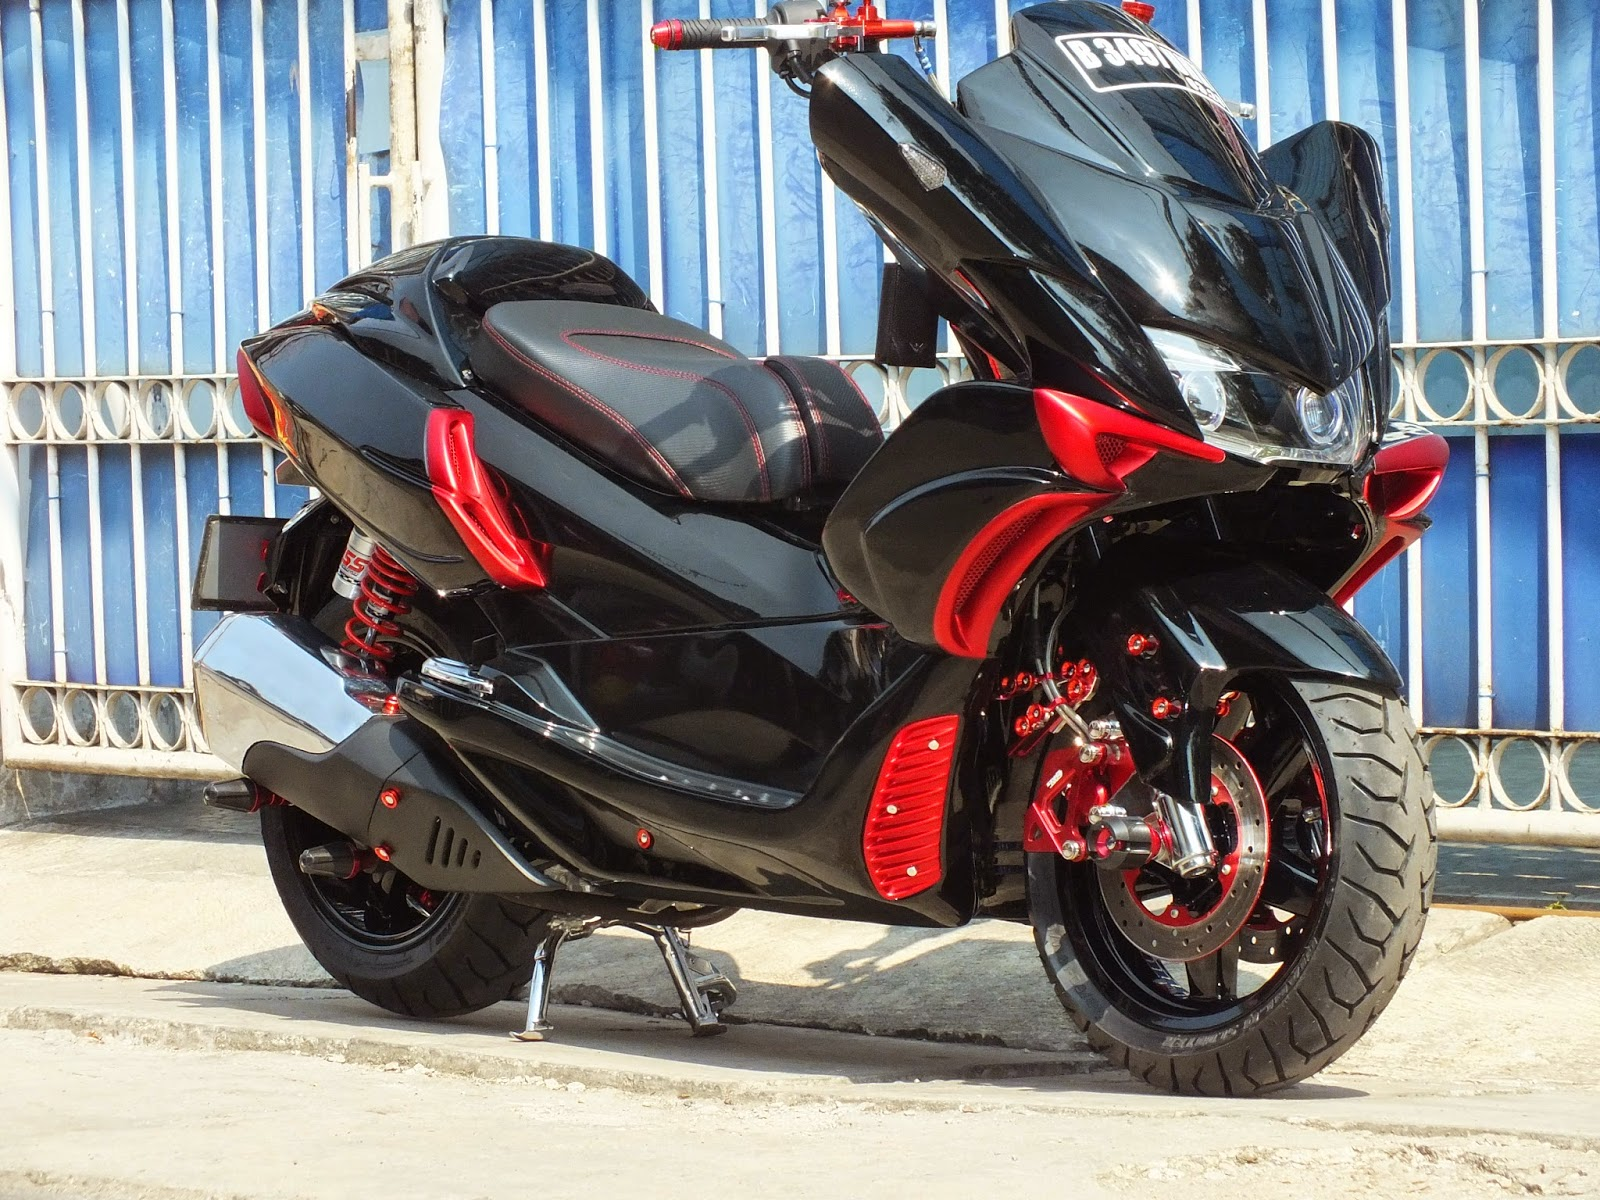 Modifikasi JOK MOTOR HONDA PCX ALL NEW MODIFIKASI SPORTS